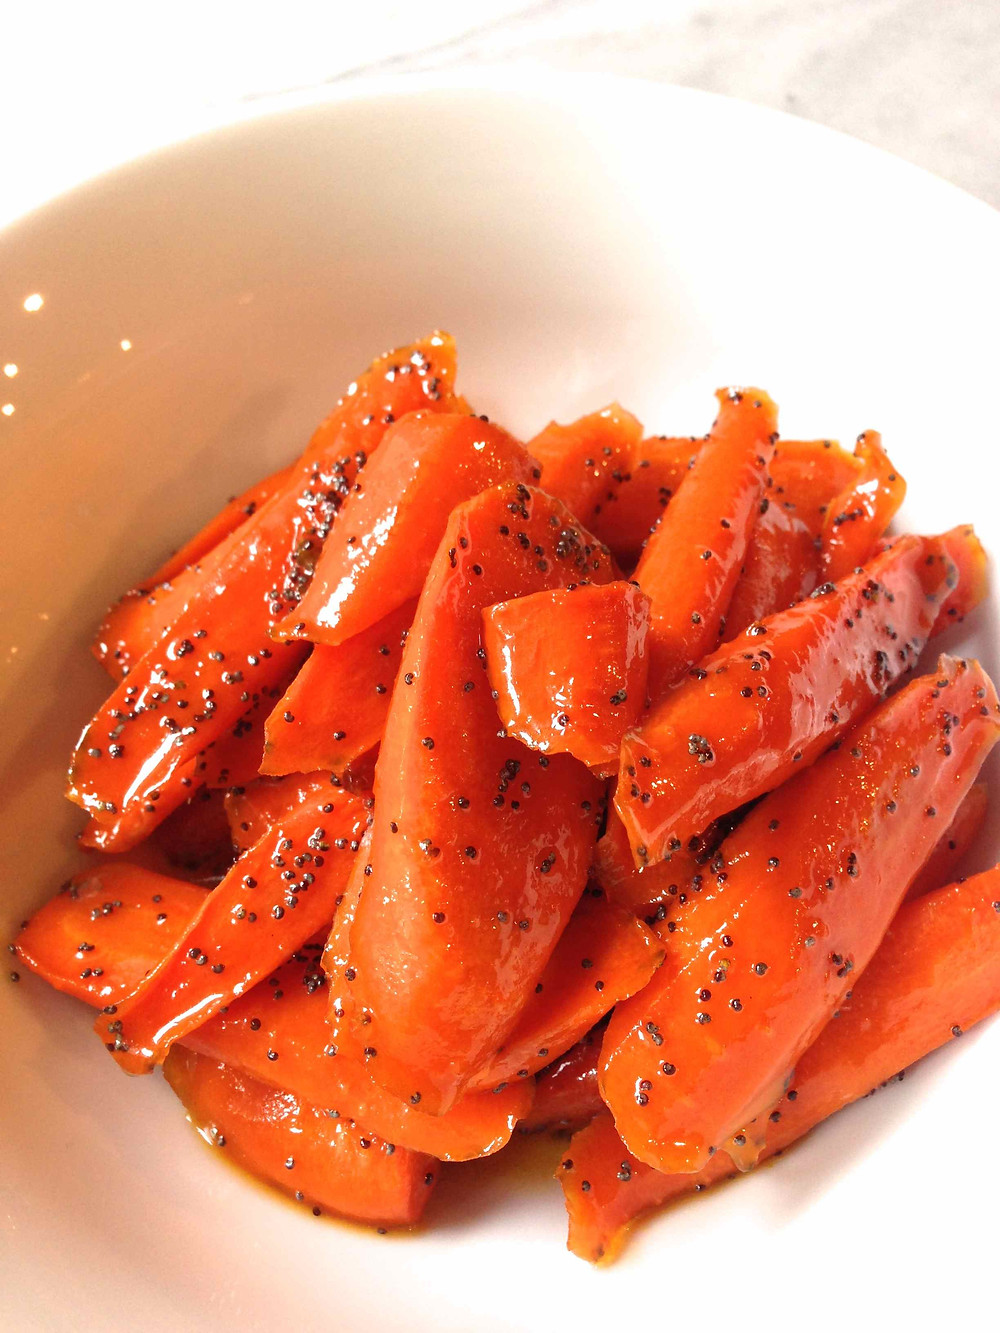 Honey Glazed Carrots c2014 TRC 1.jpg